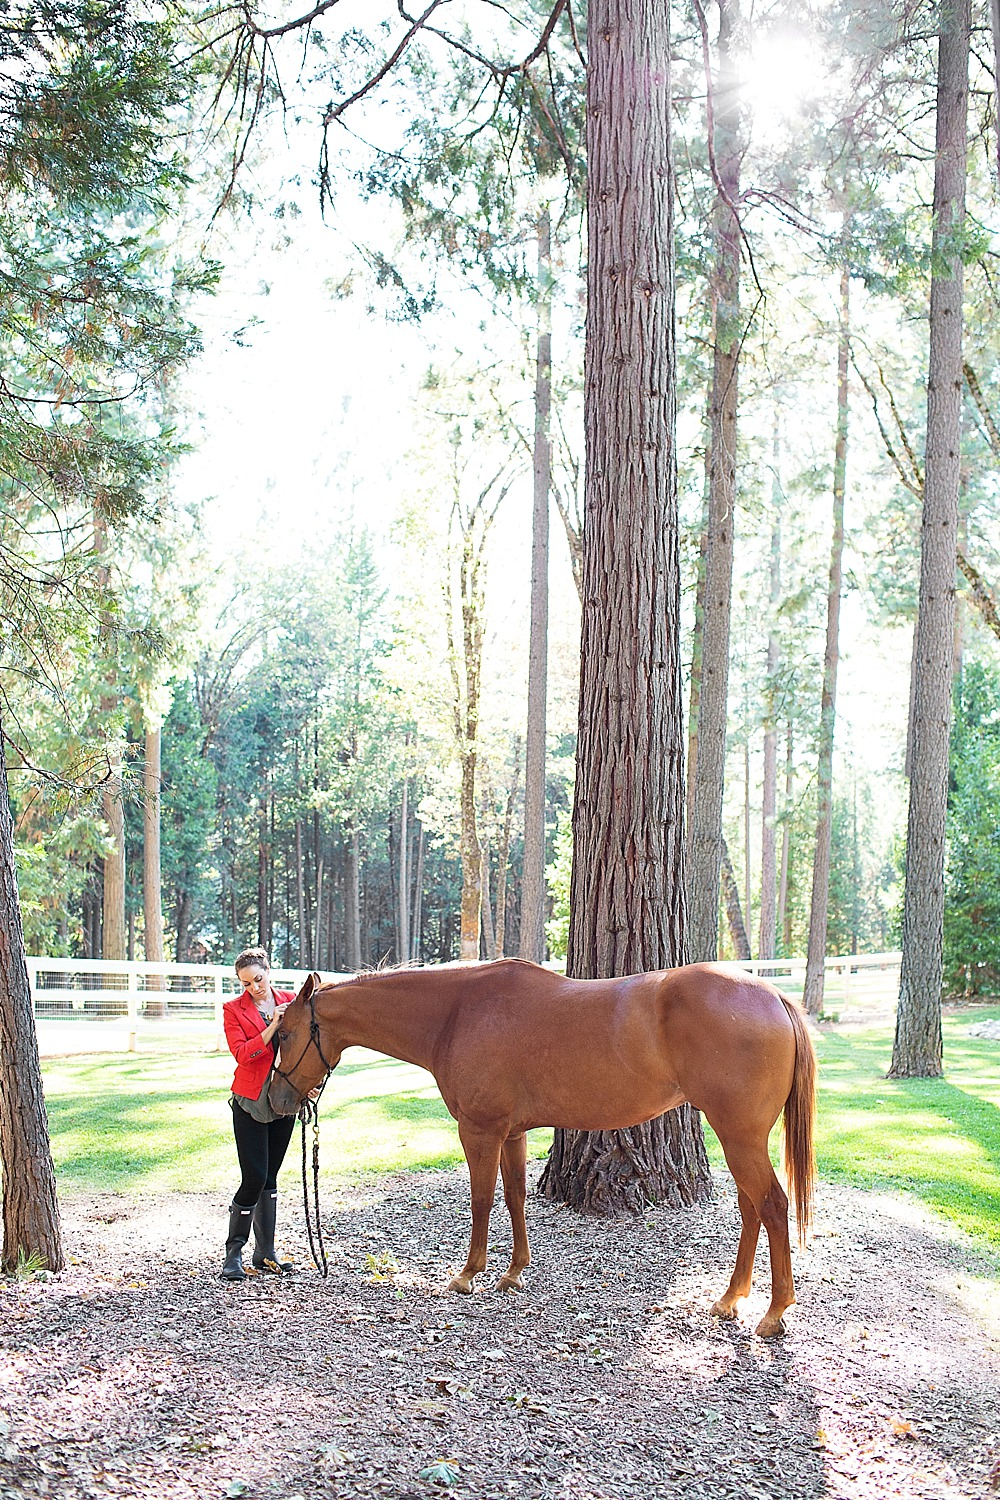 rachel-equestrian-grass-valley-diana-elizabeth-photography-144